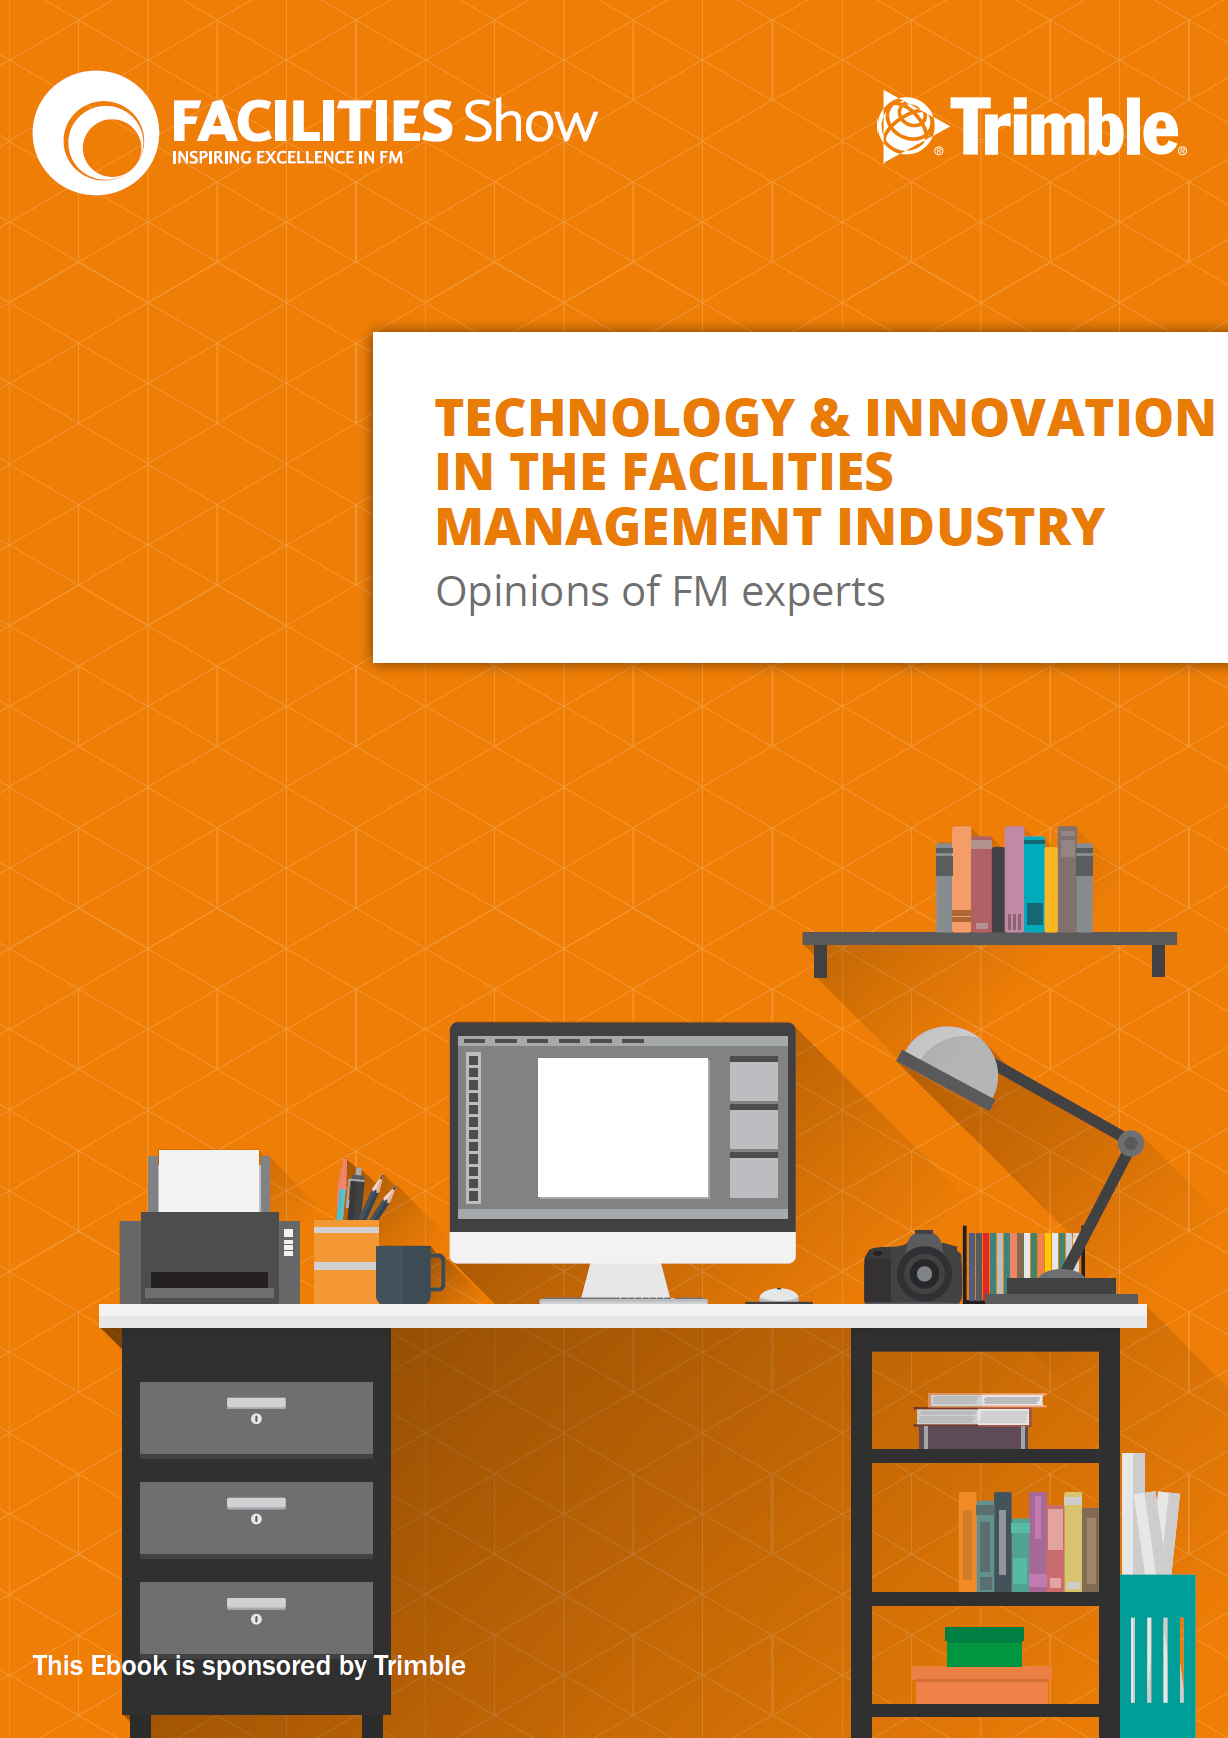 Technology & Innovation in the Facilities Management Industry – Opinions from the Experts